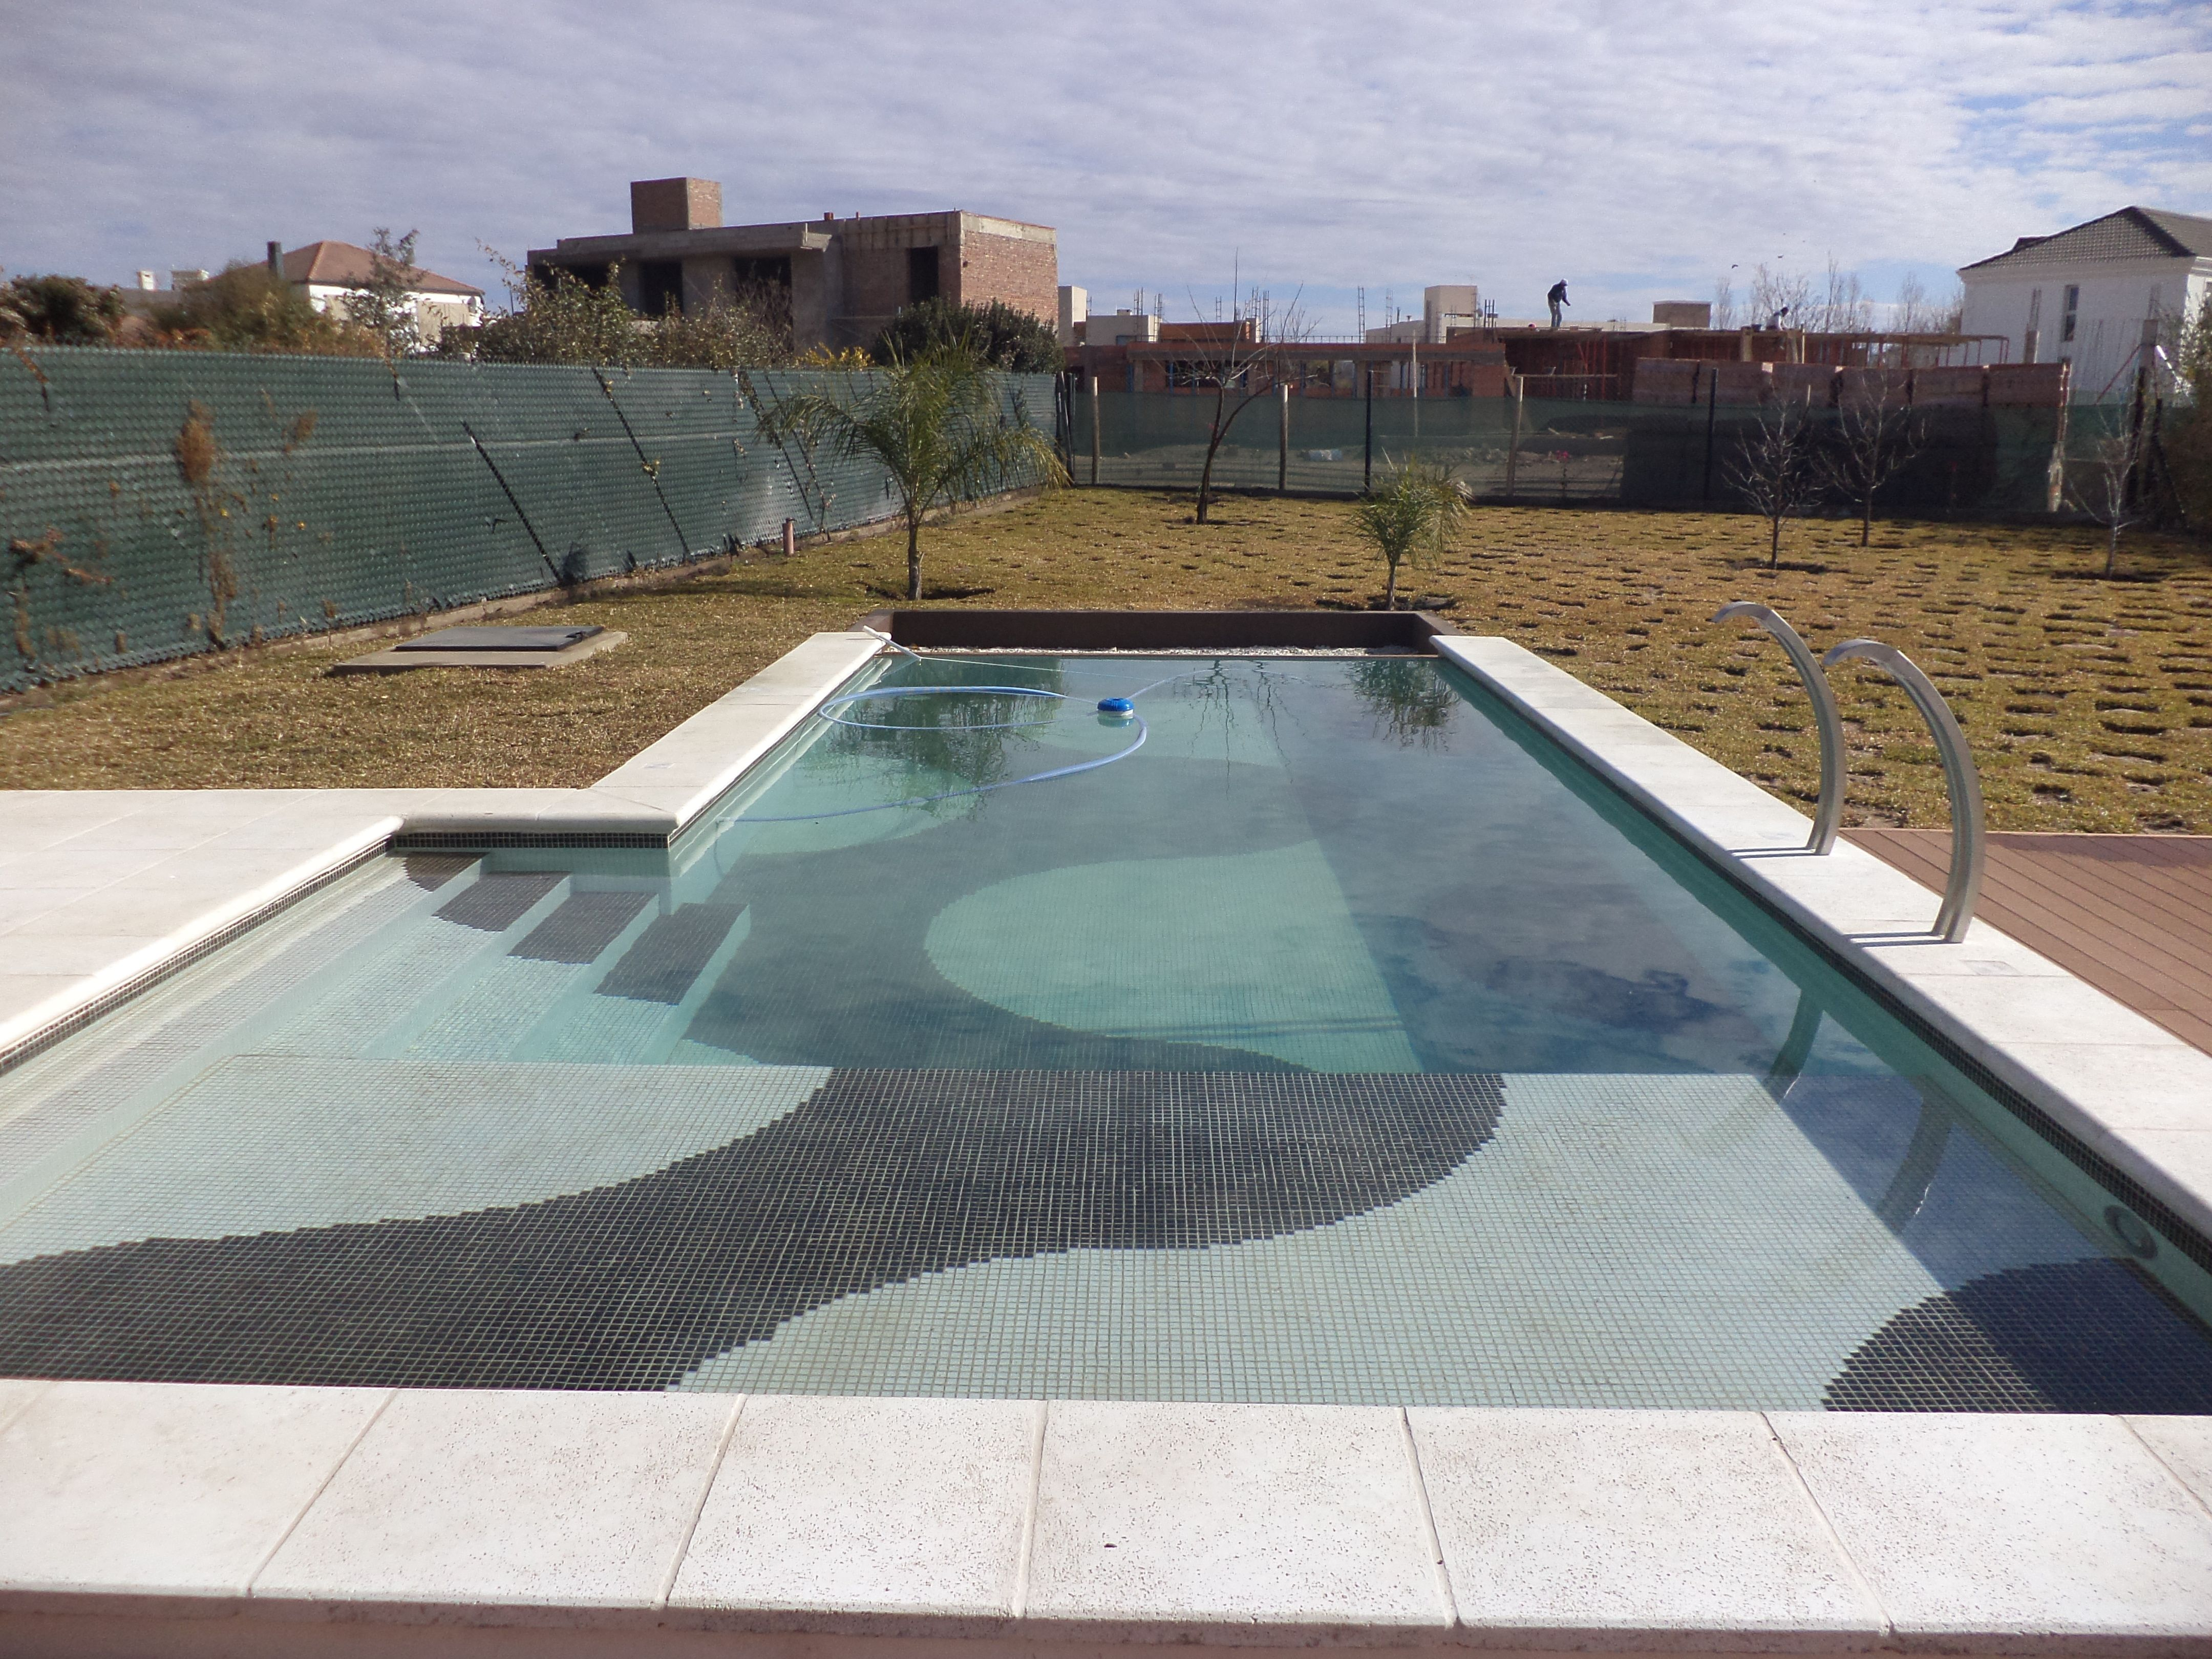 arquitectura - desborde - deck - piscinas - wellnes - swimmingpool